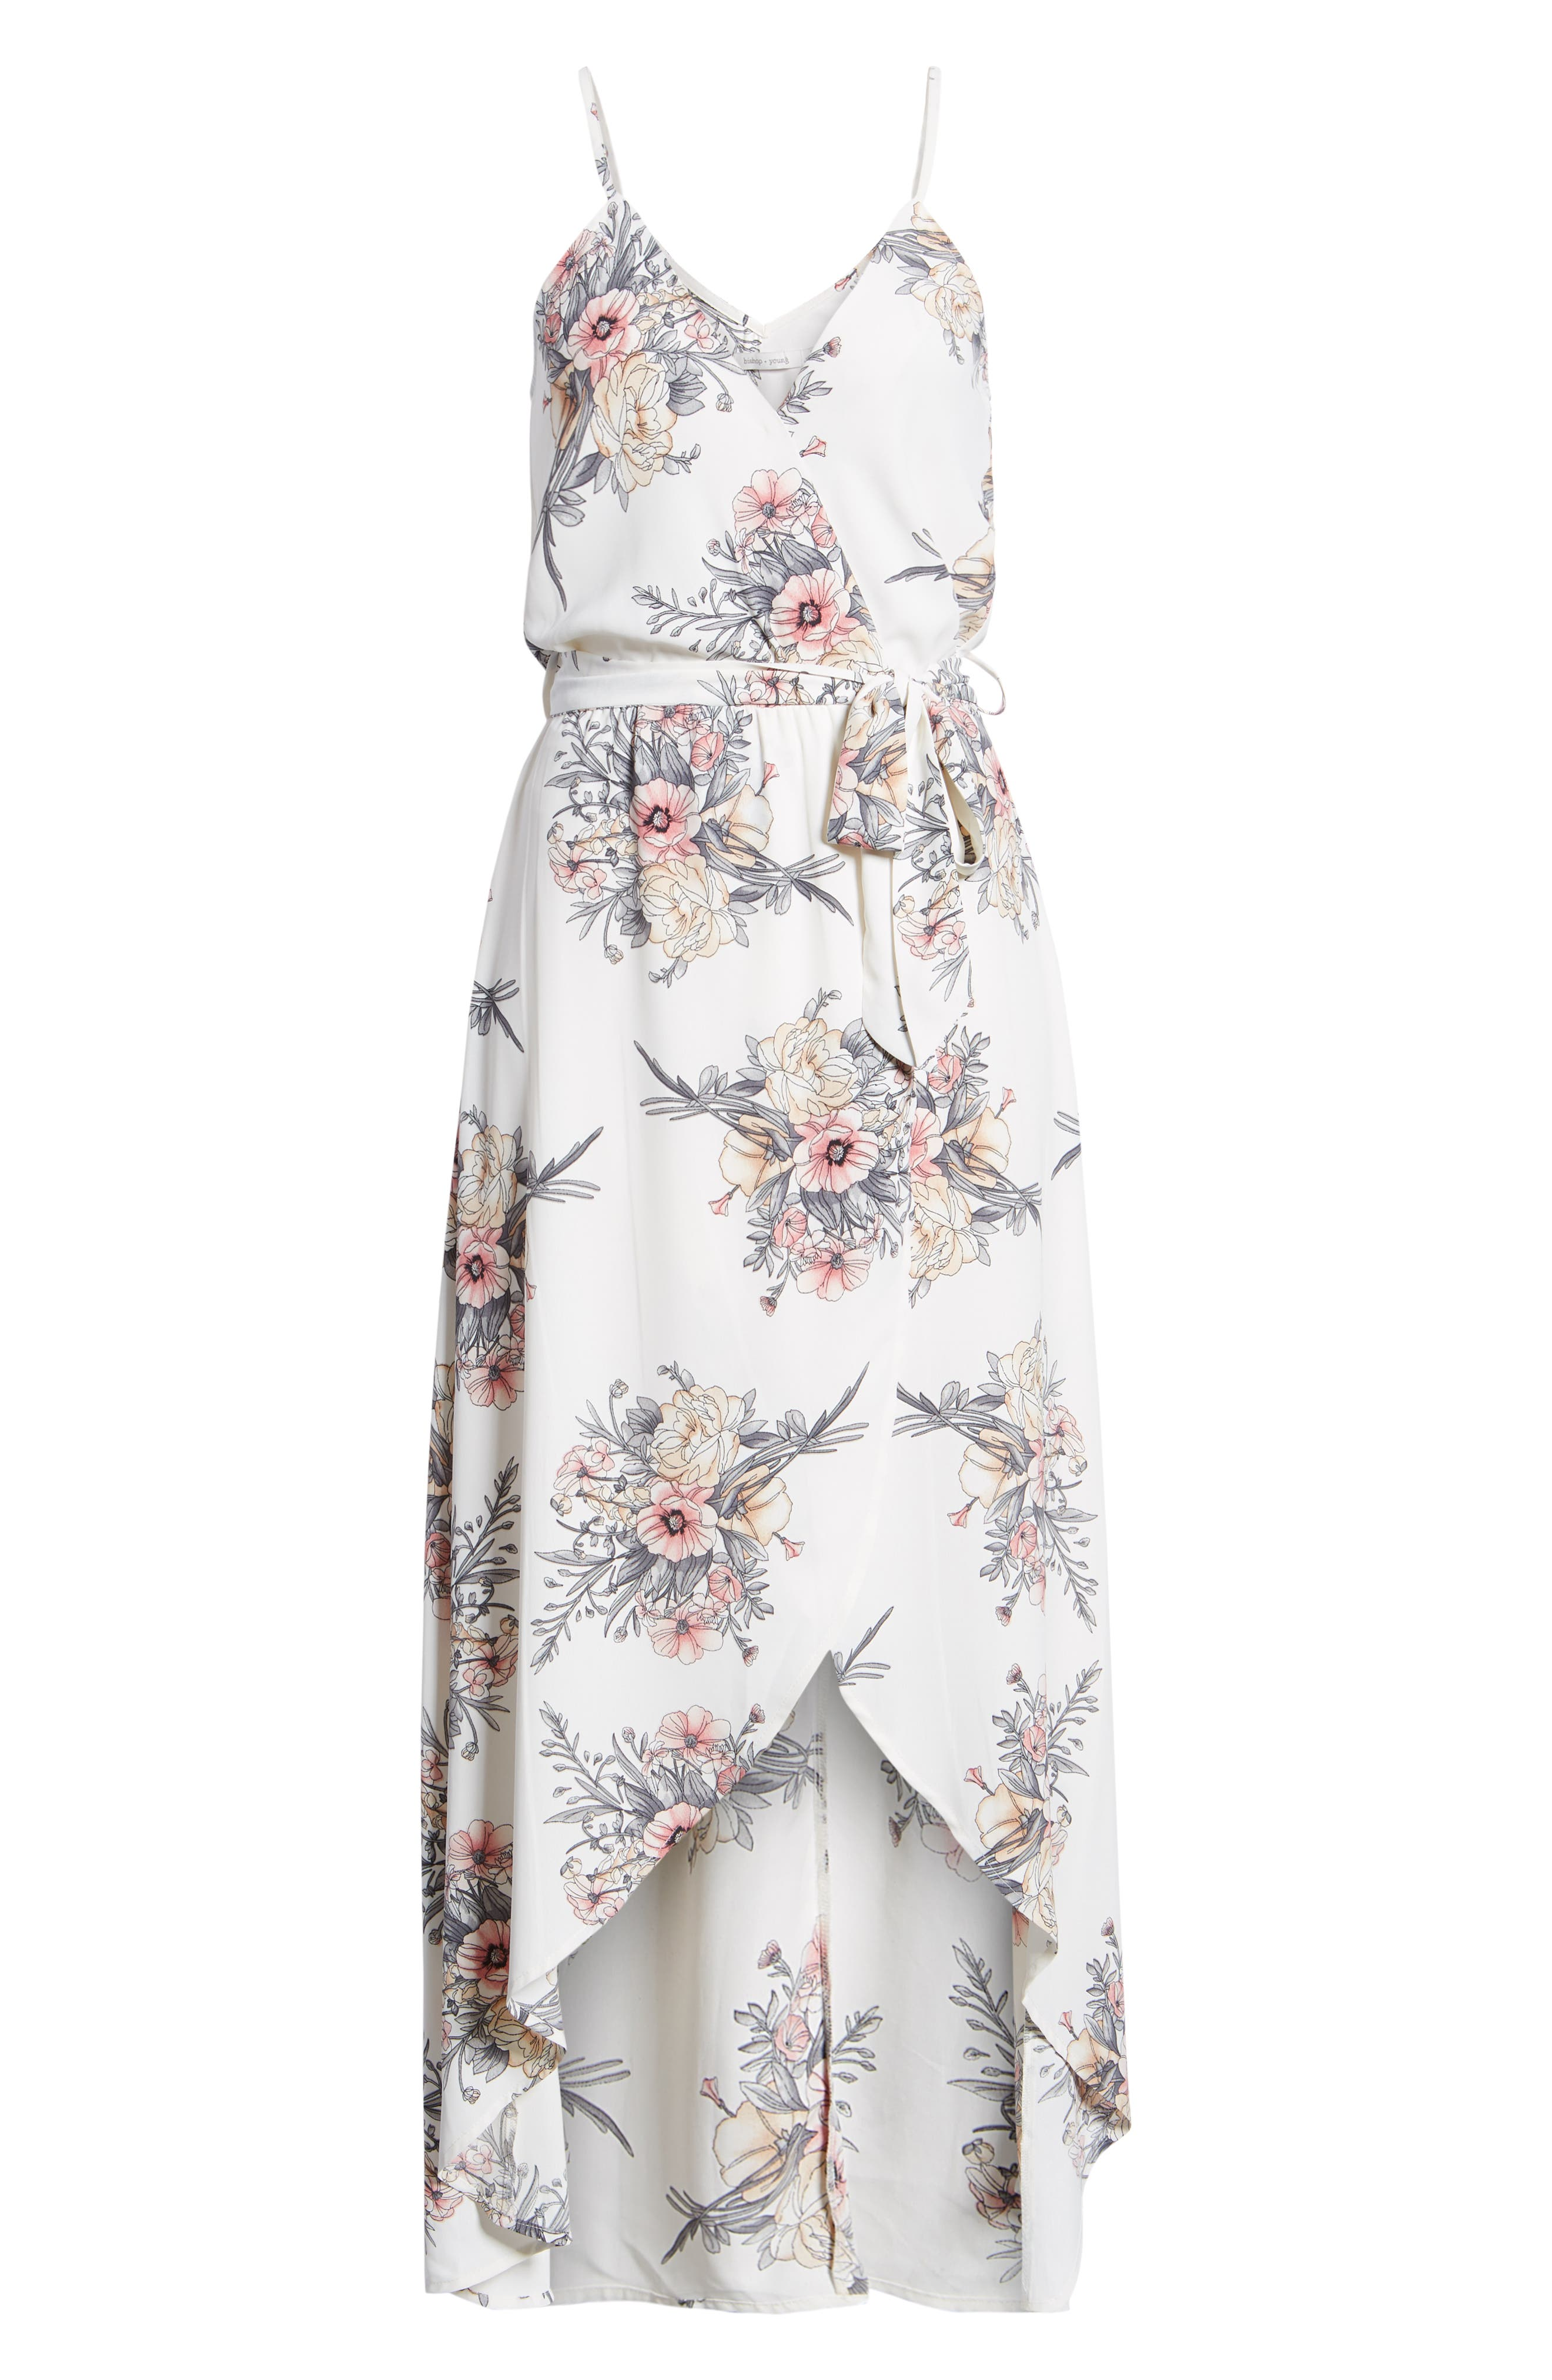 Bishop + Young Summer of Love Maxi Dress,                             Alternate thumbnail 7, color,                             Summer Of Love Print